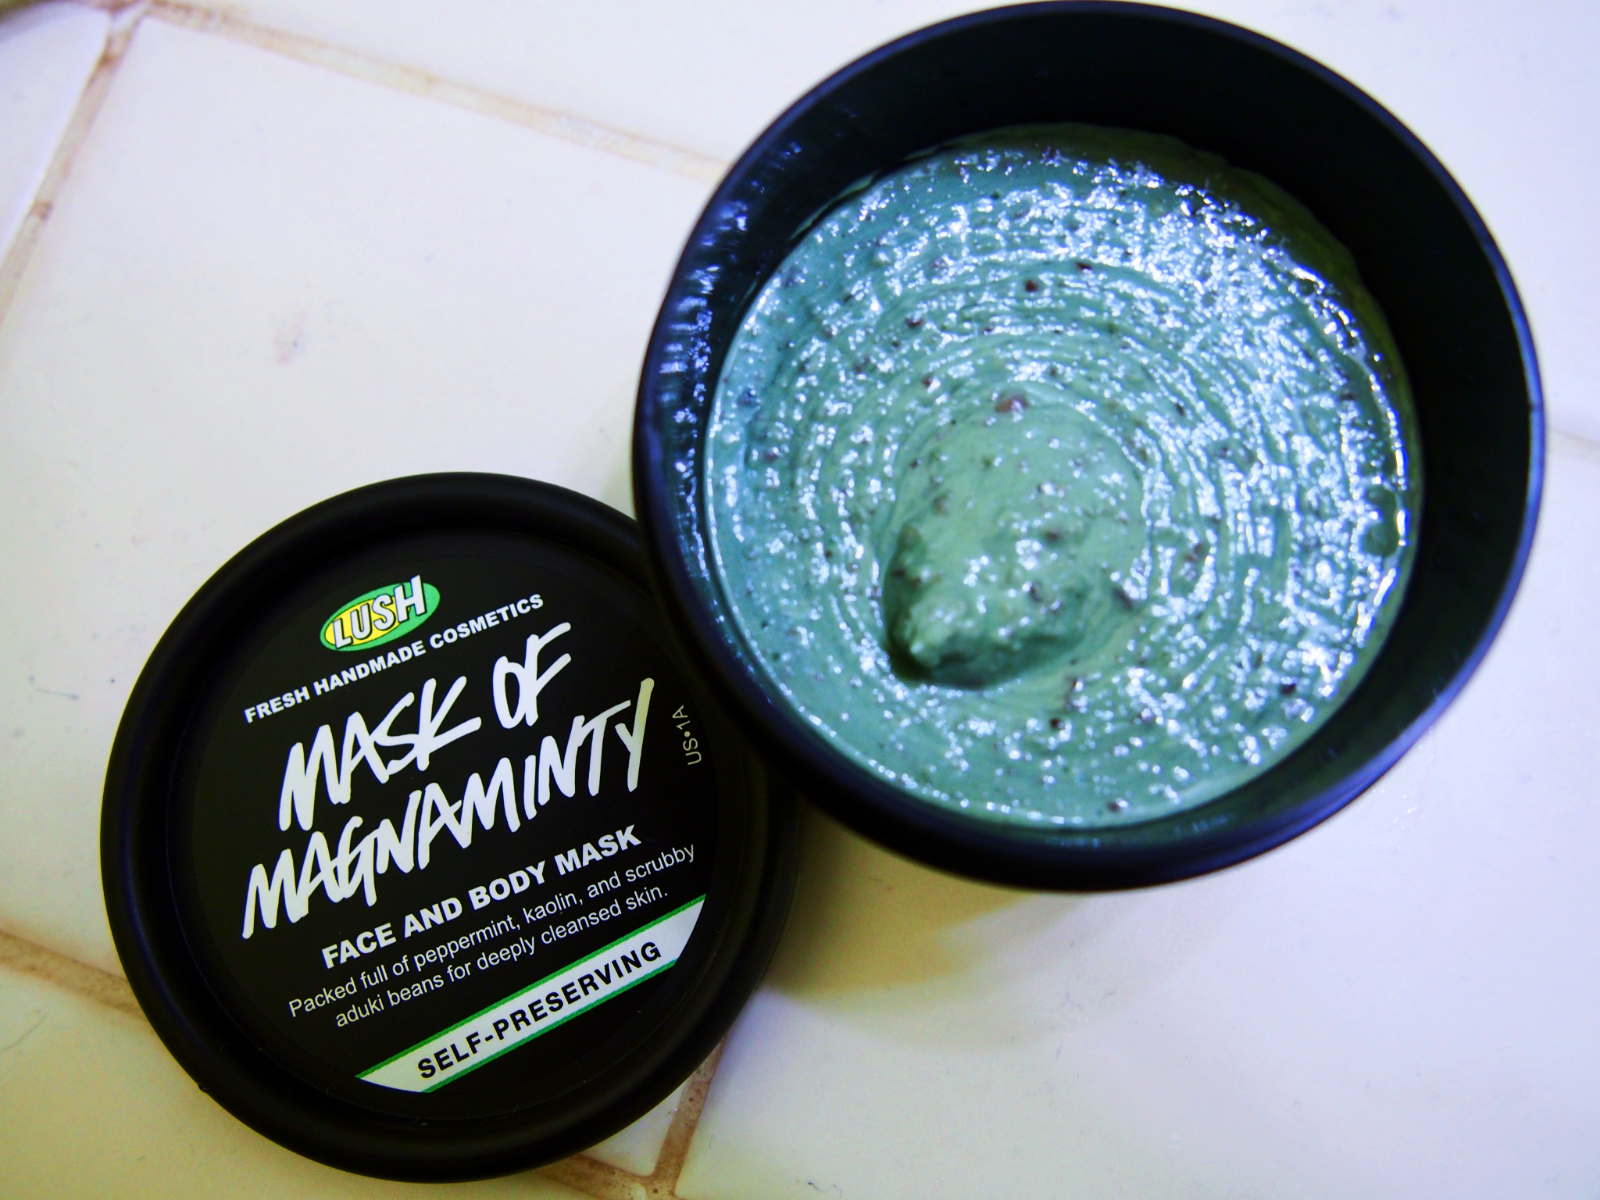 Lush Cosmetics Mask of Magnaminty Product Review